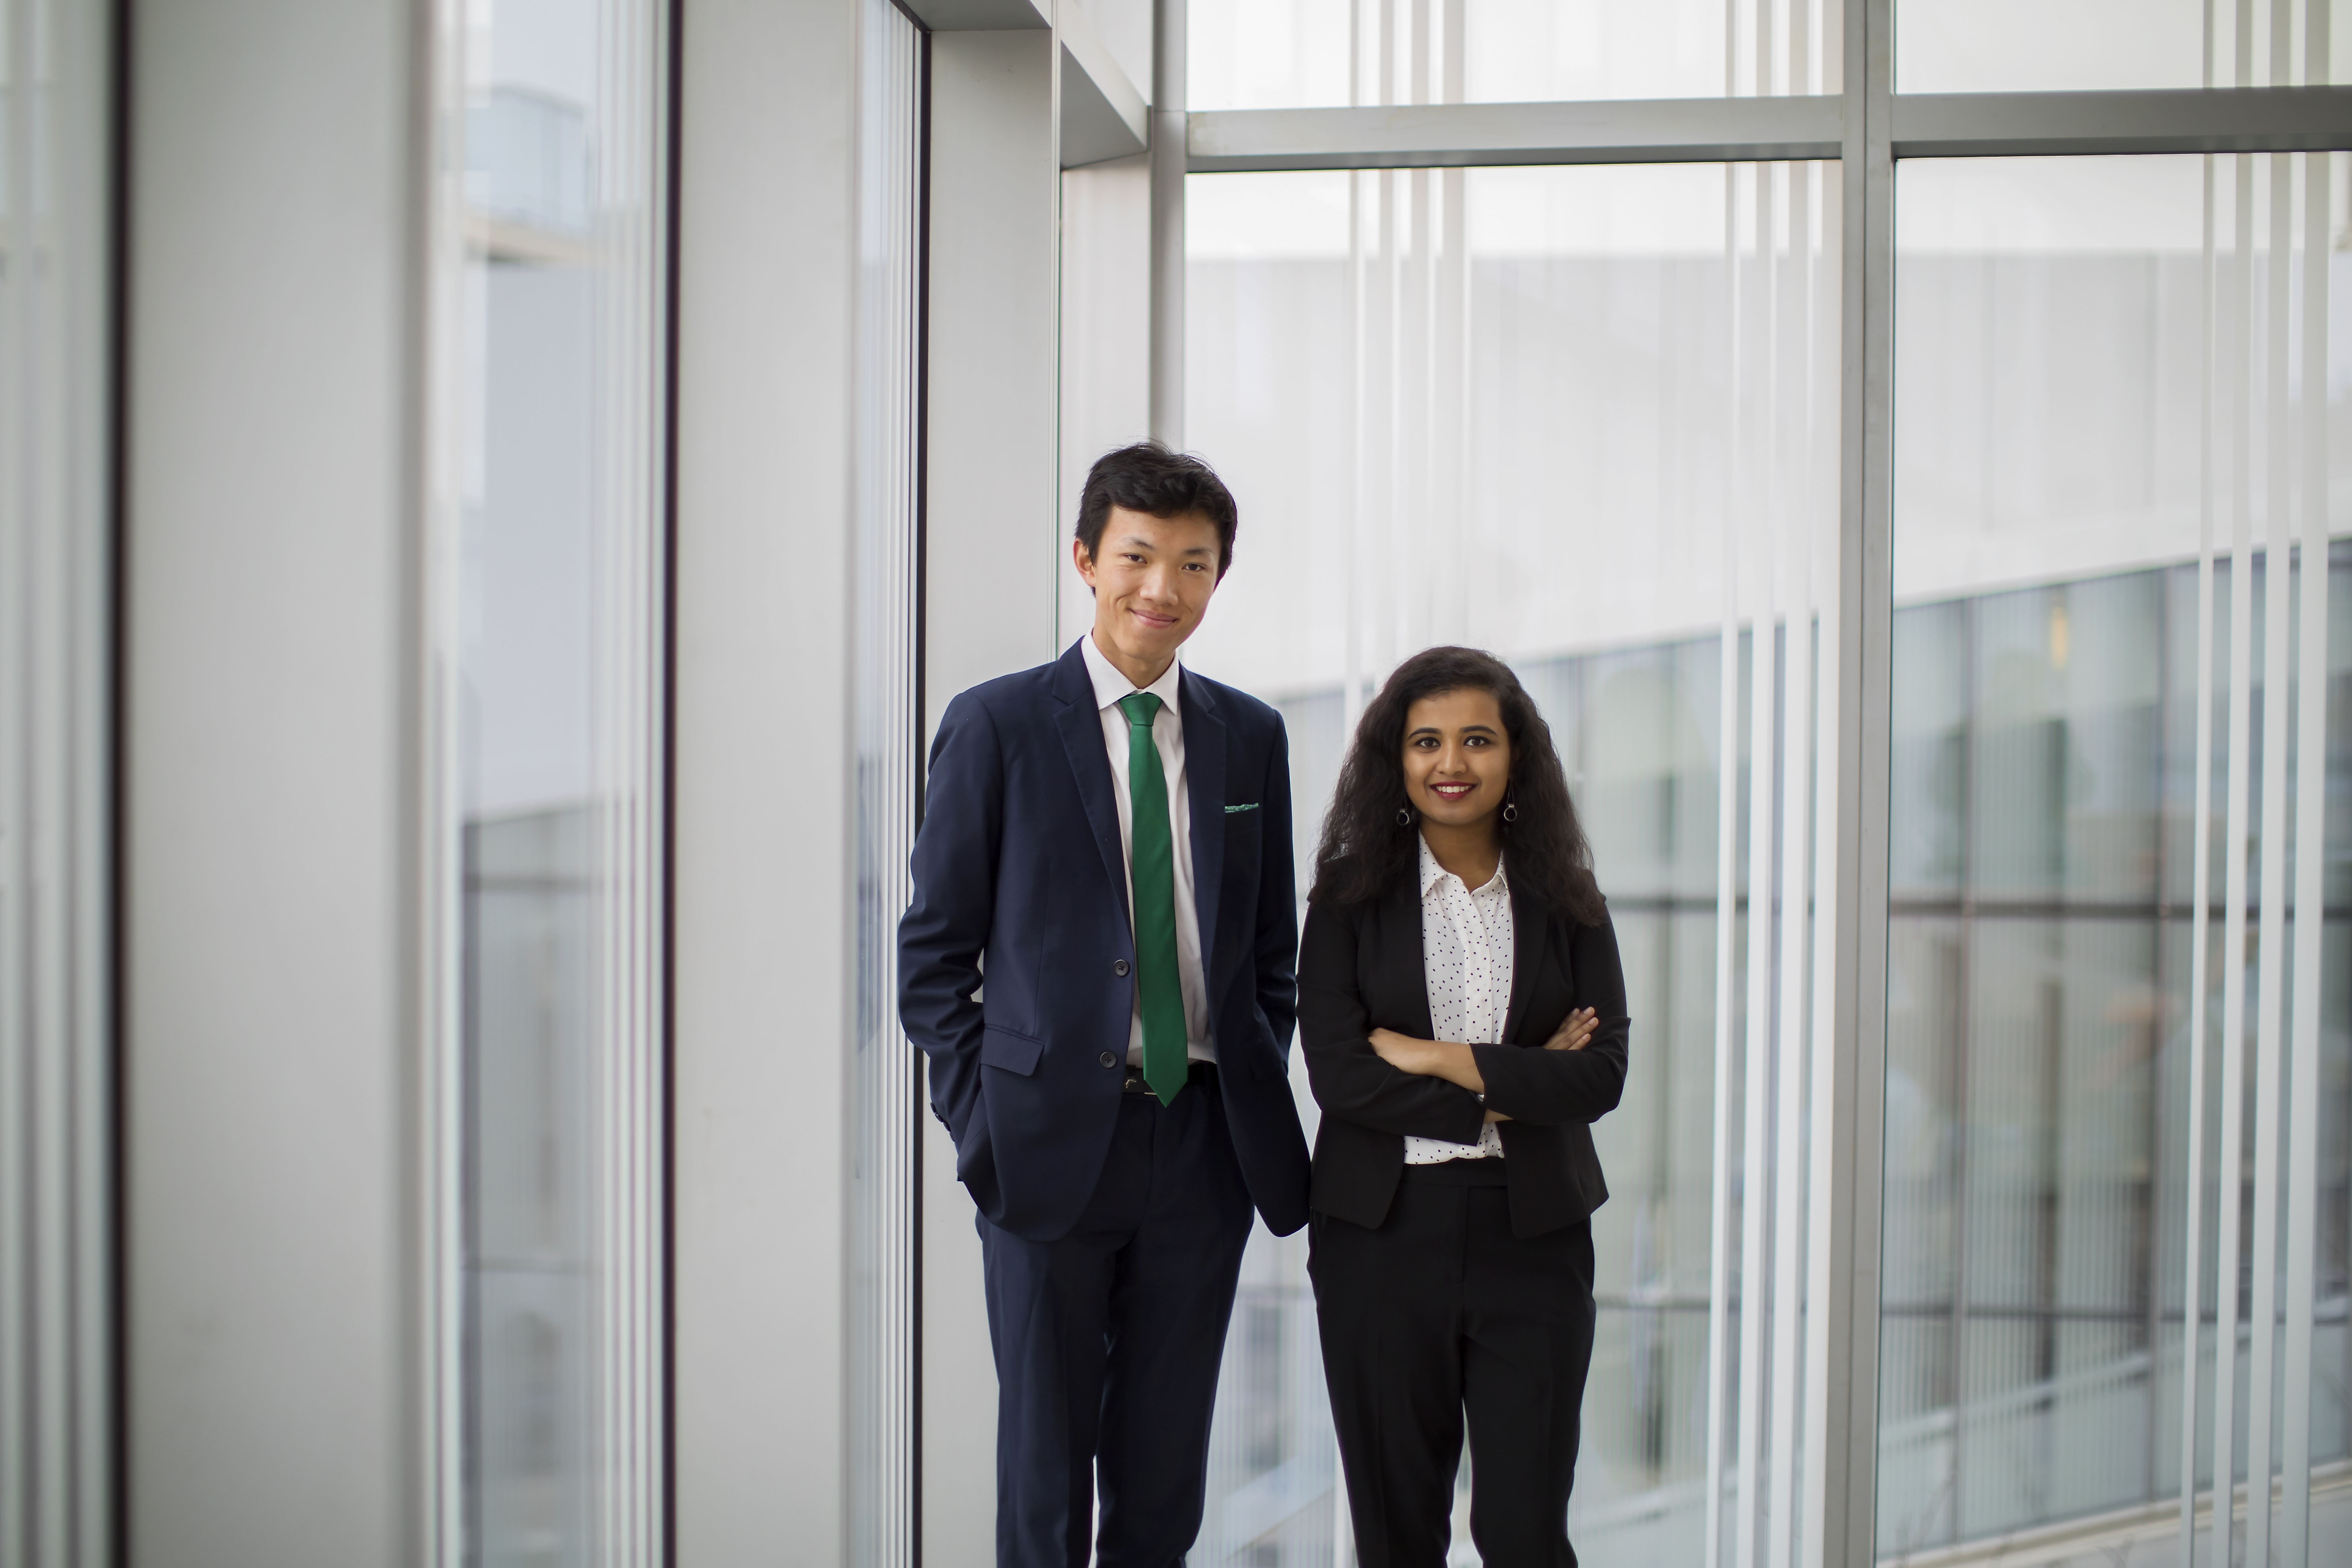 caption: Peter Wang Hjemdahl and Svanika Balasubramanian. Photo courtesy of the Office of the President.